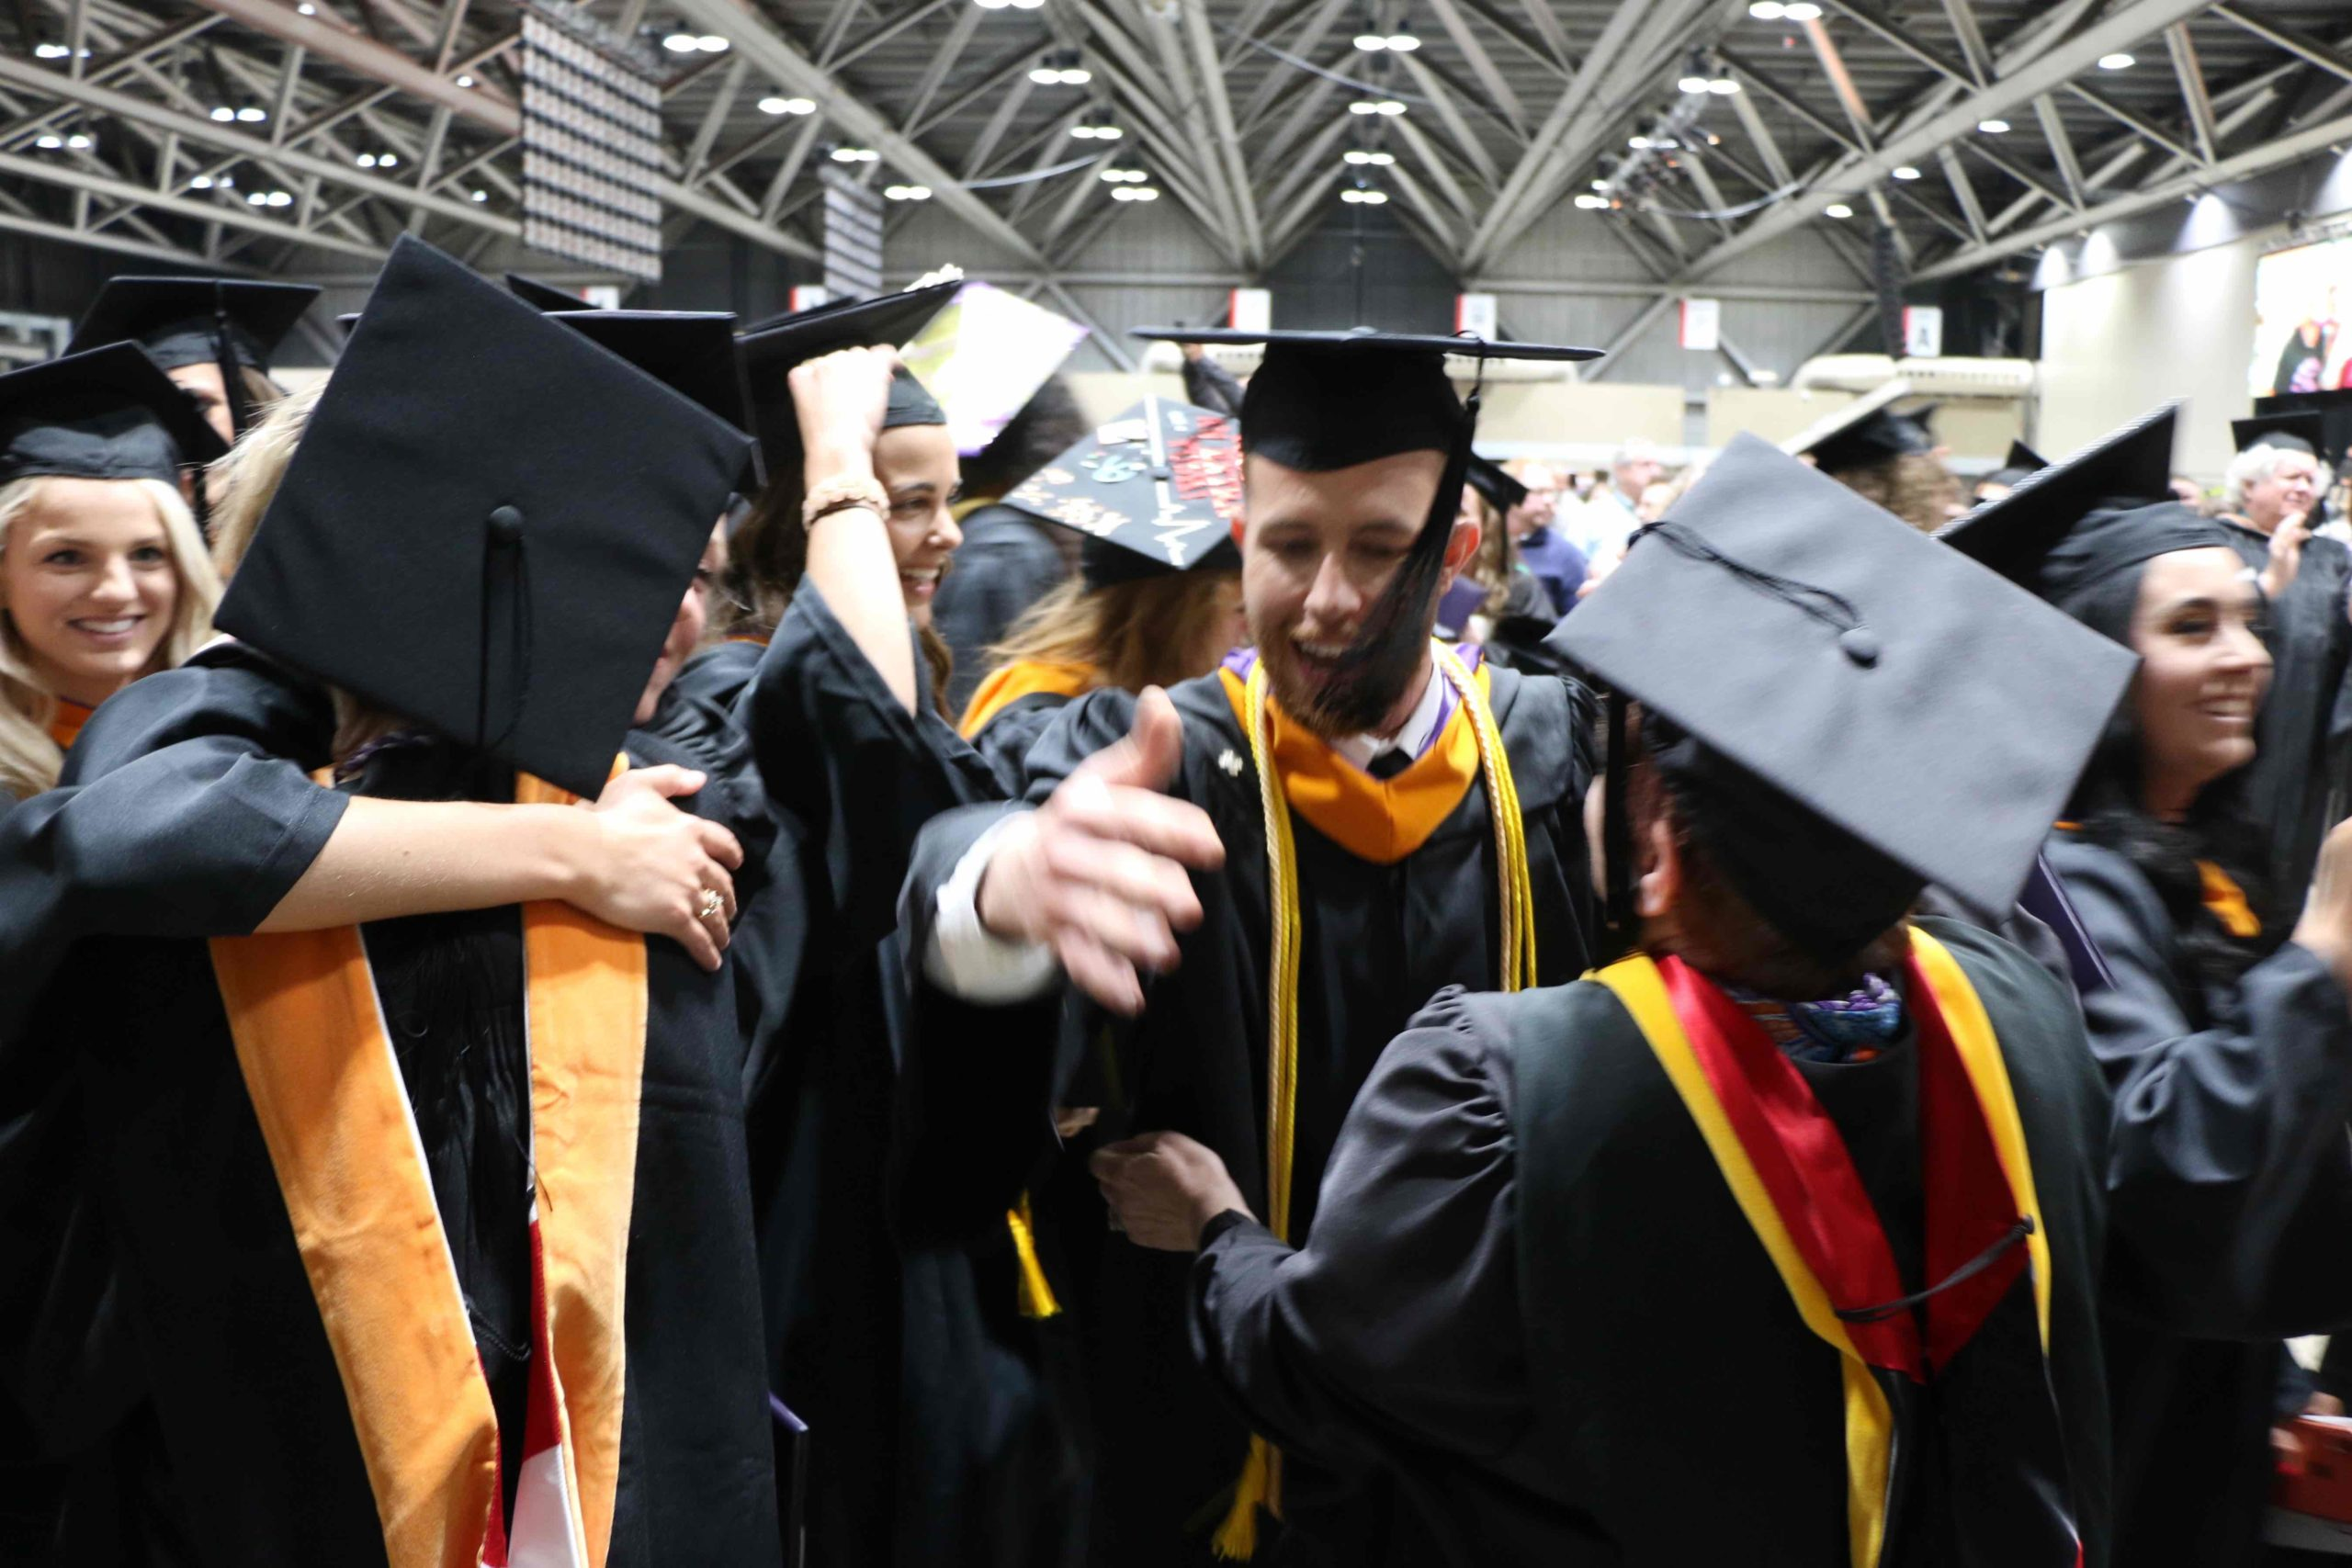 A group of students hugging in the reception line post-graduation